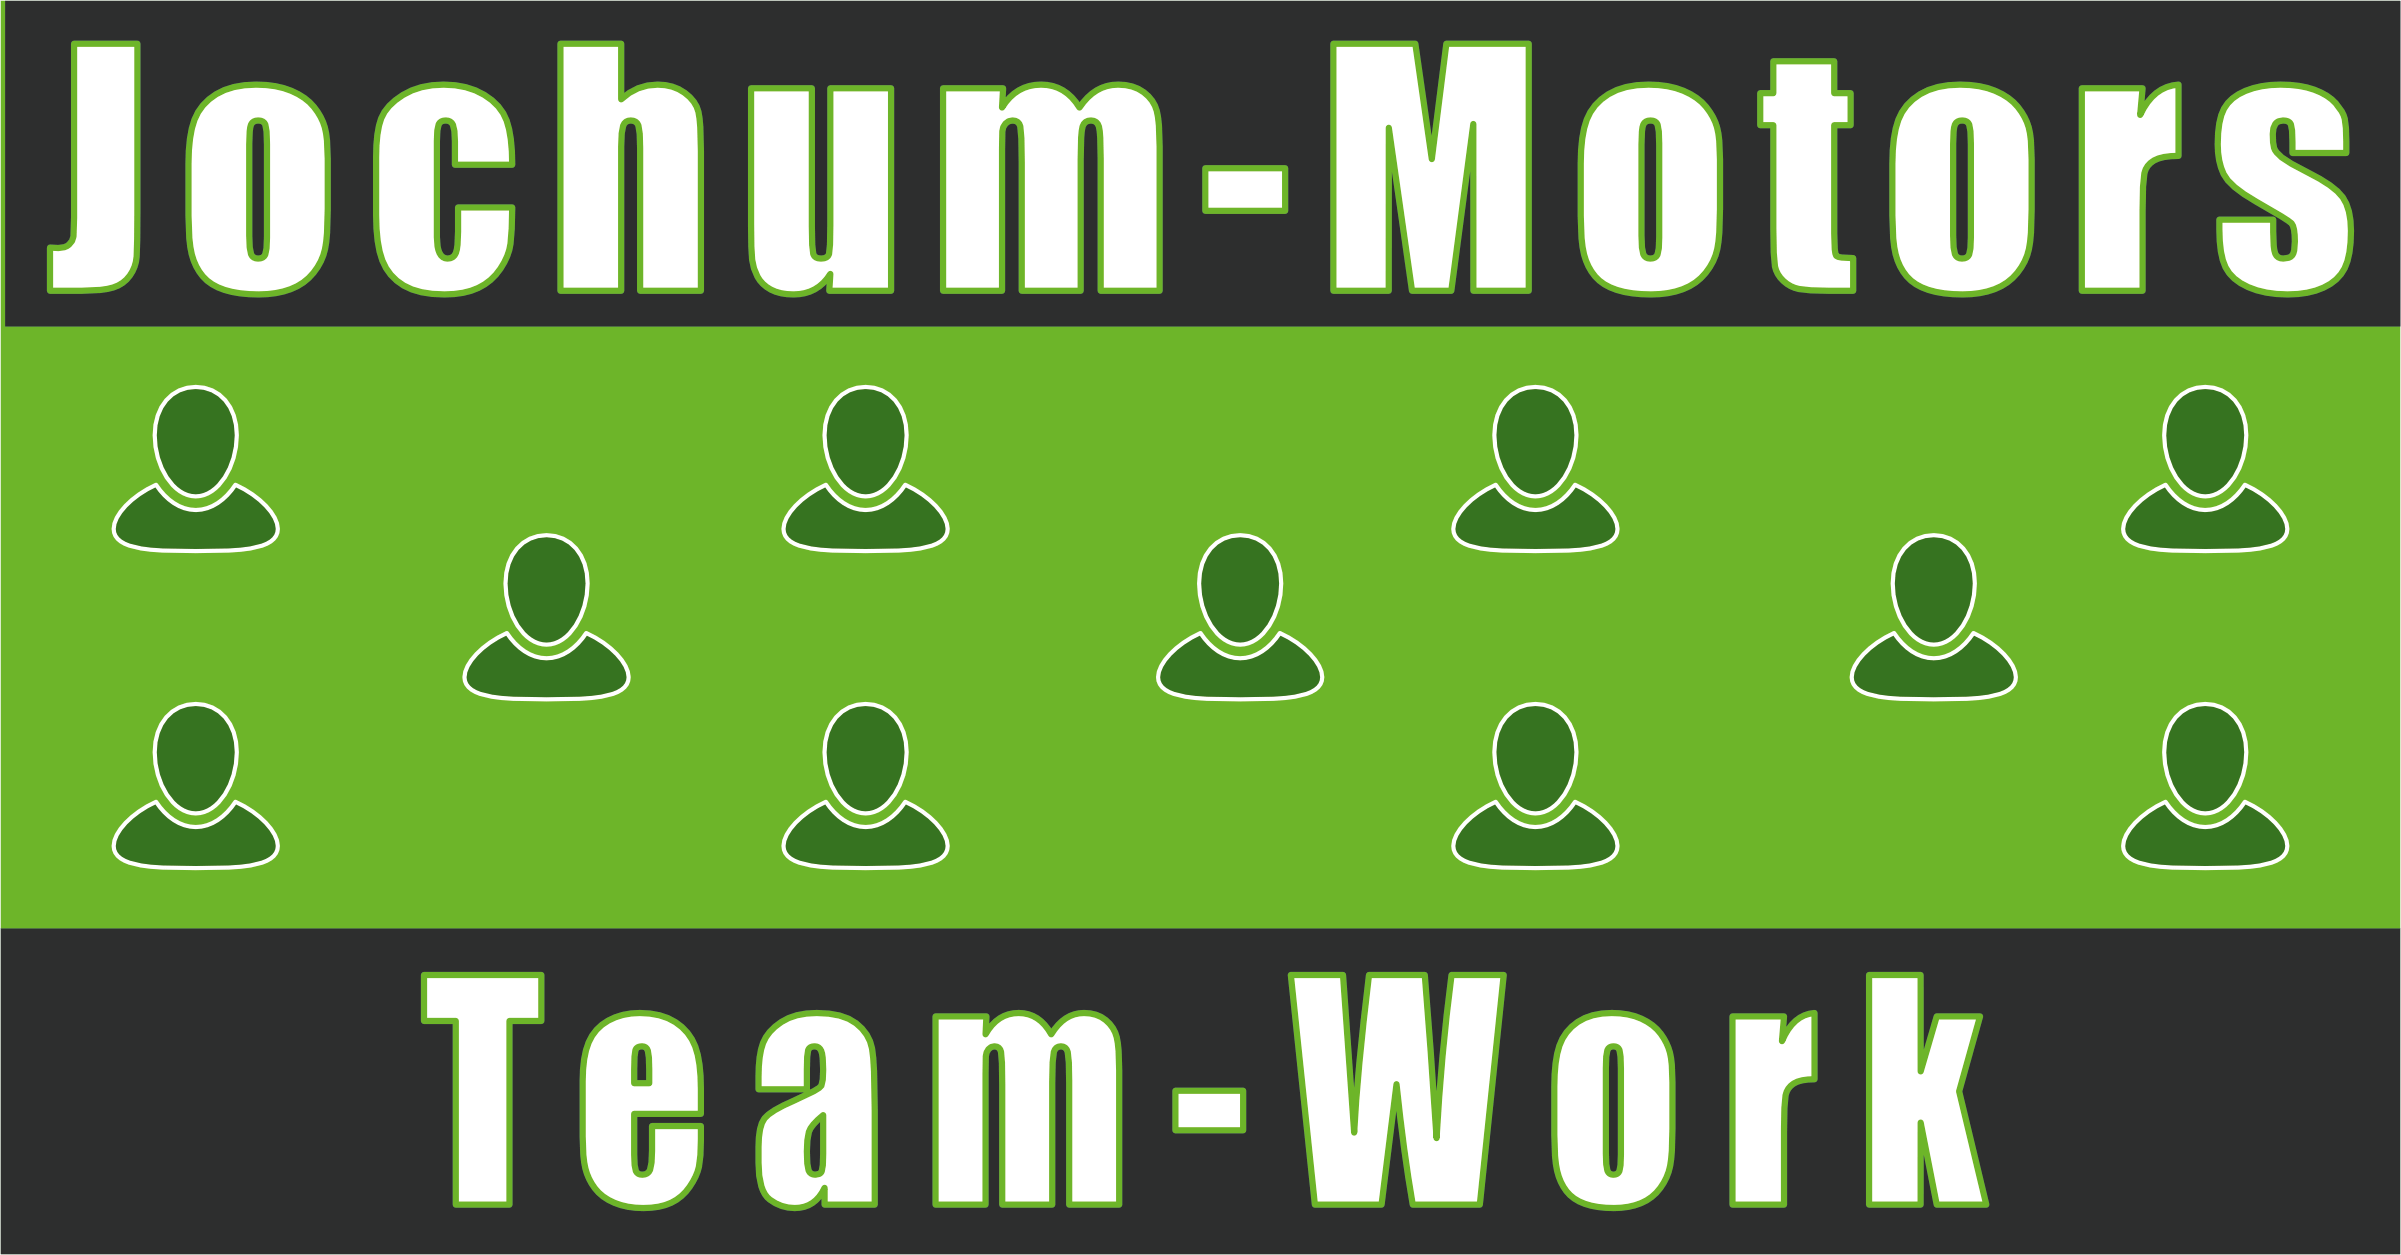 Team - Jochum-Motors